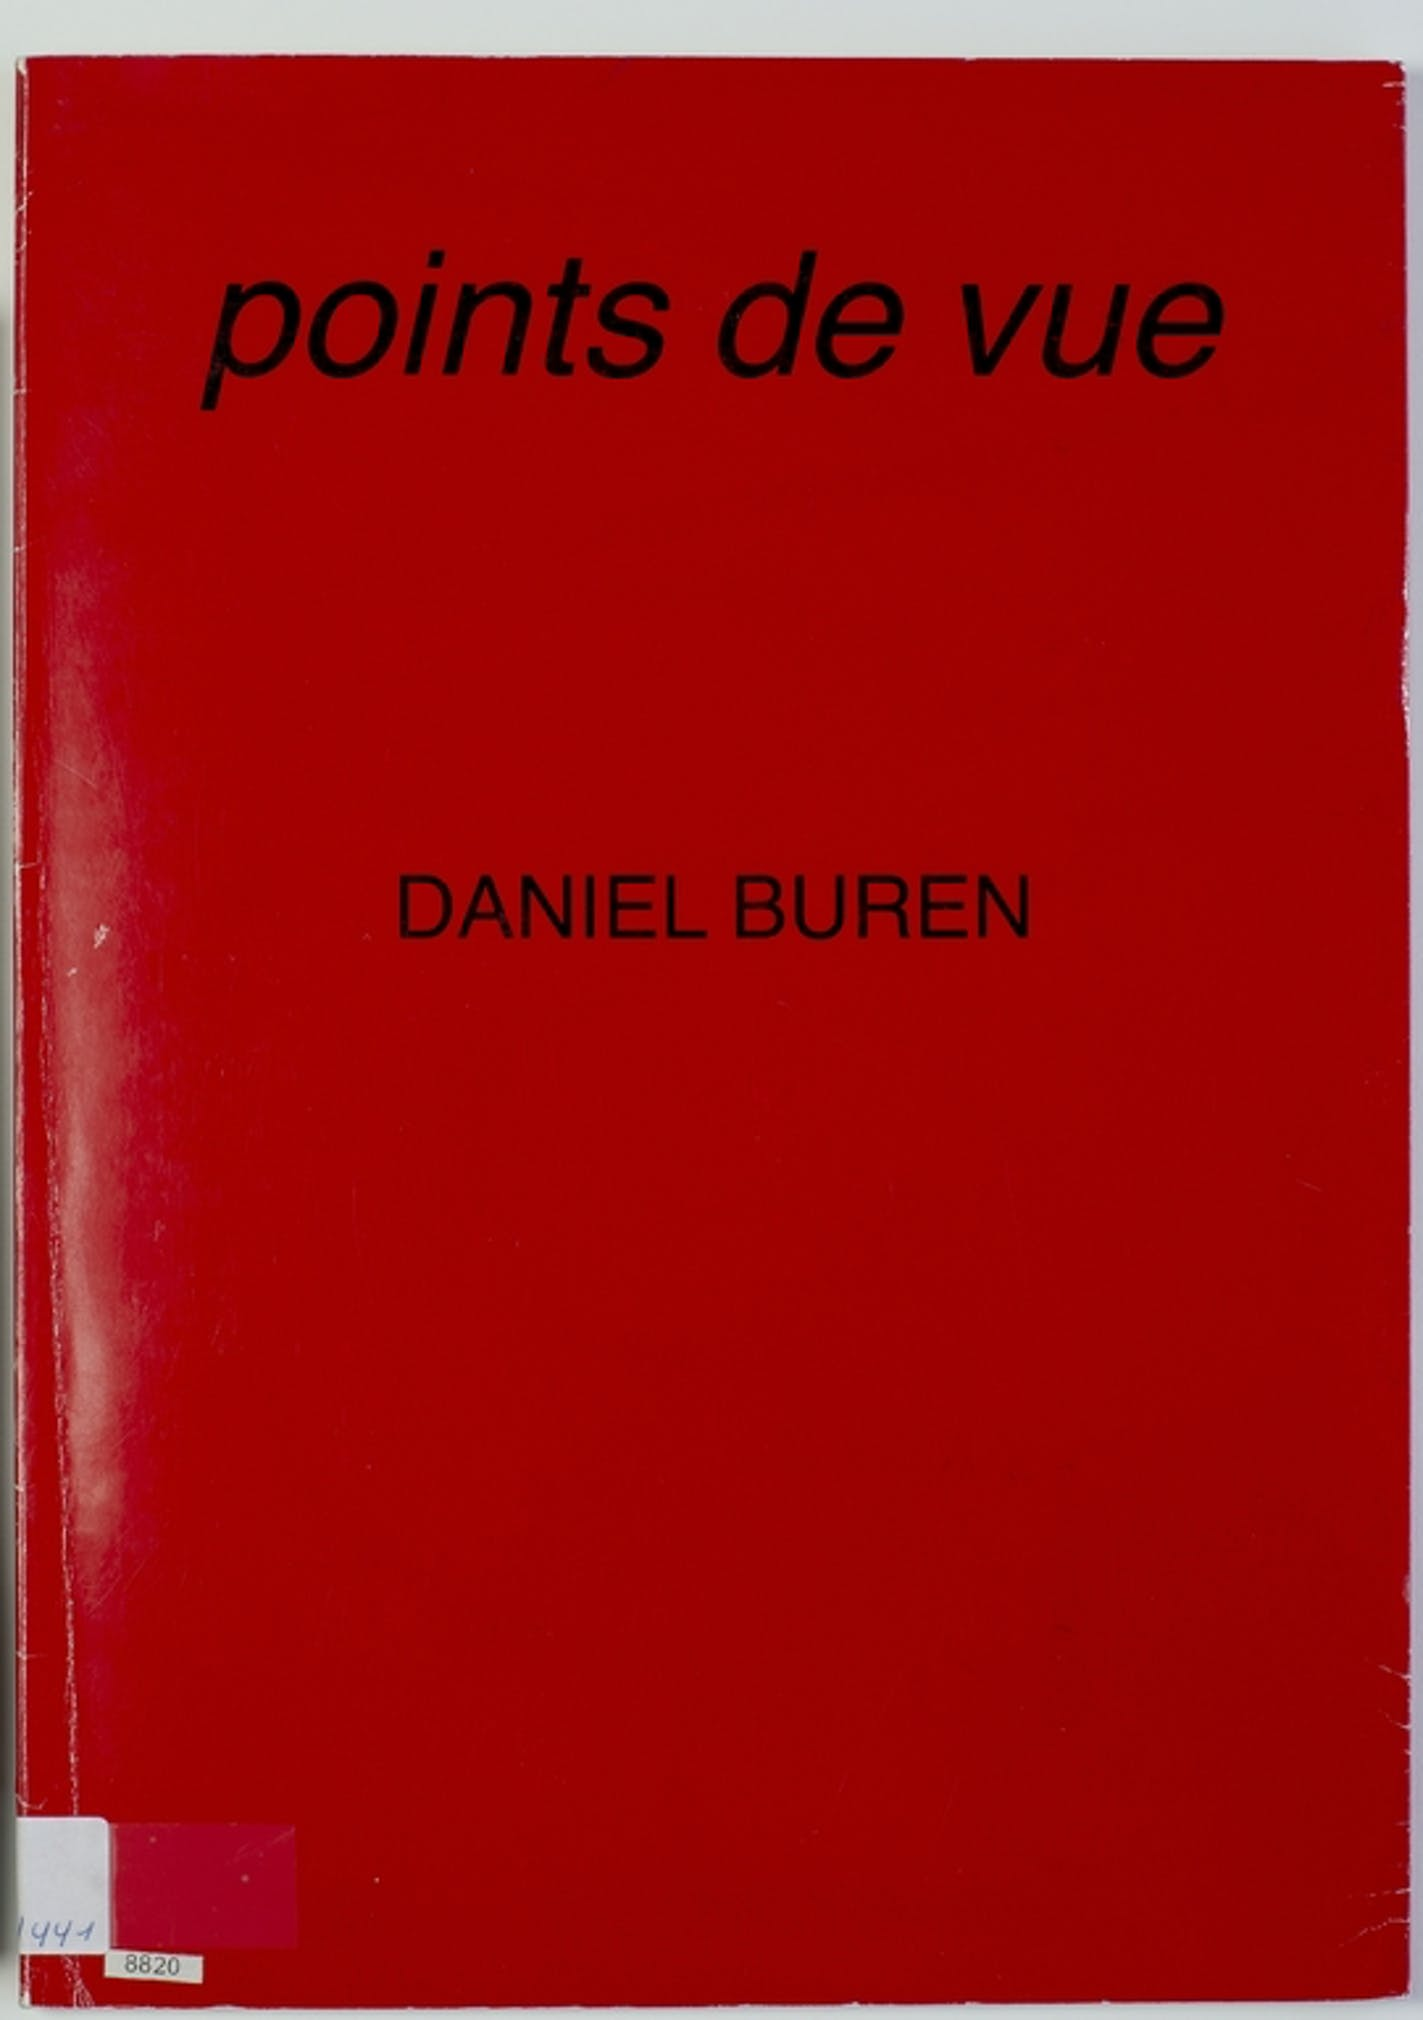 Daniel Buren - points de vue | Artworks | Collections | M